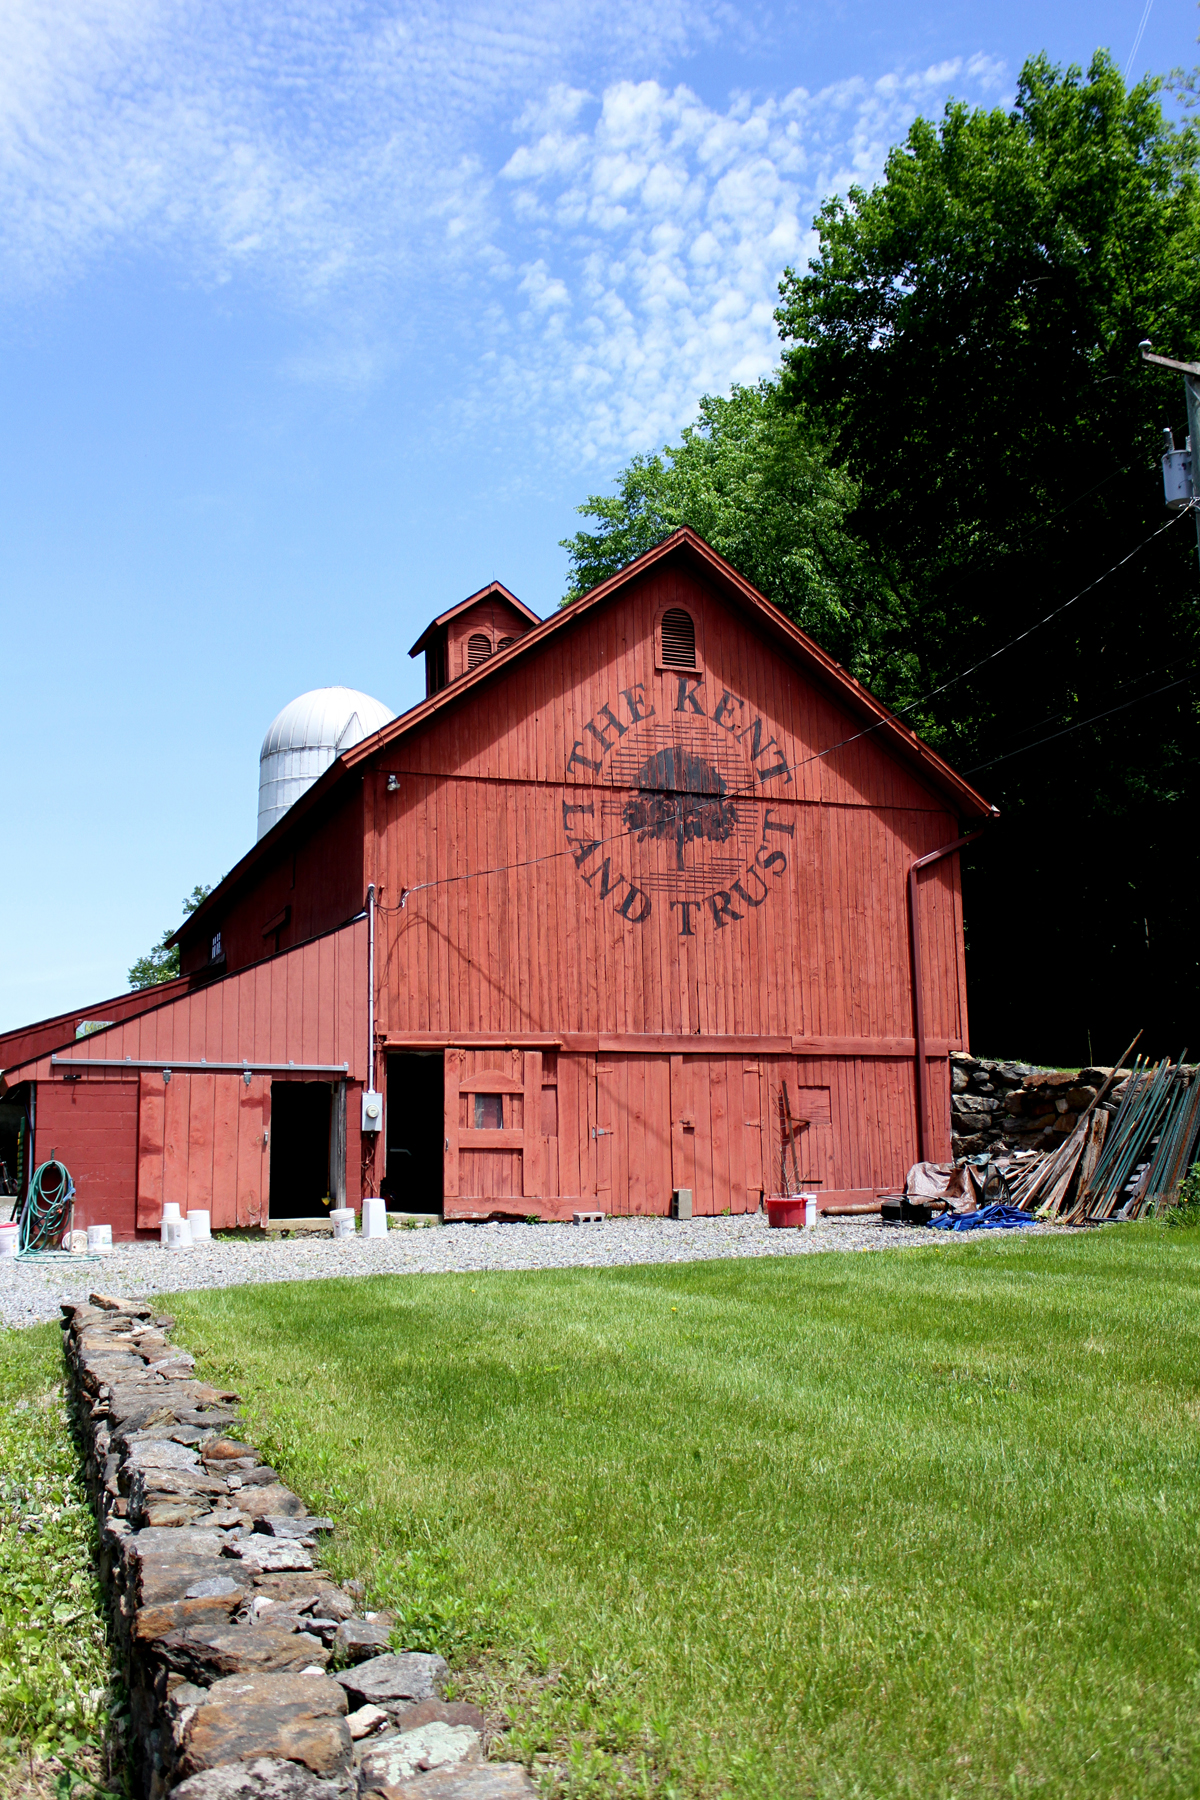 KLT Barn 1 WFlanagan June 2014